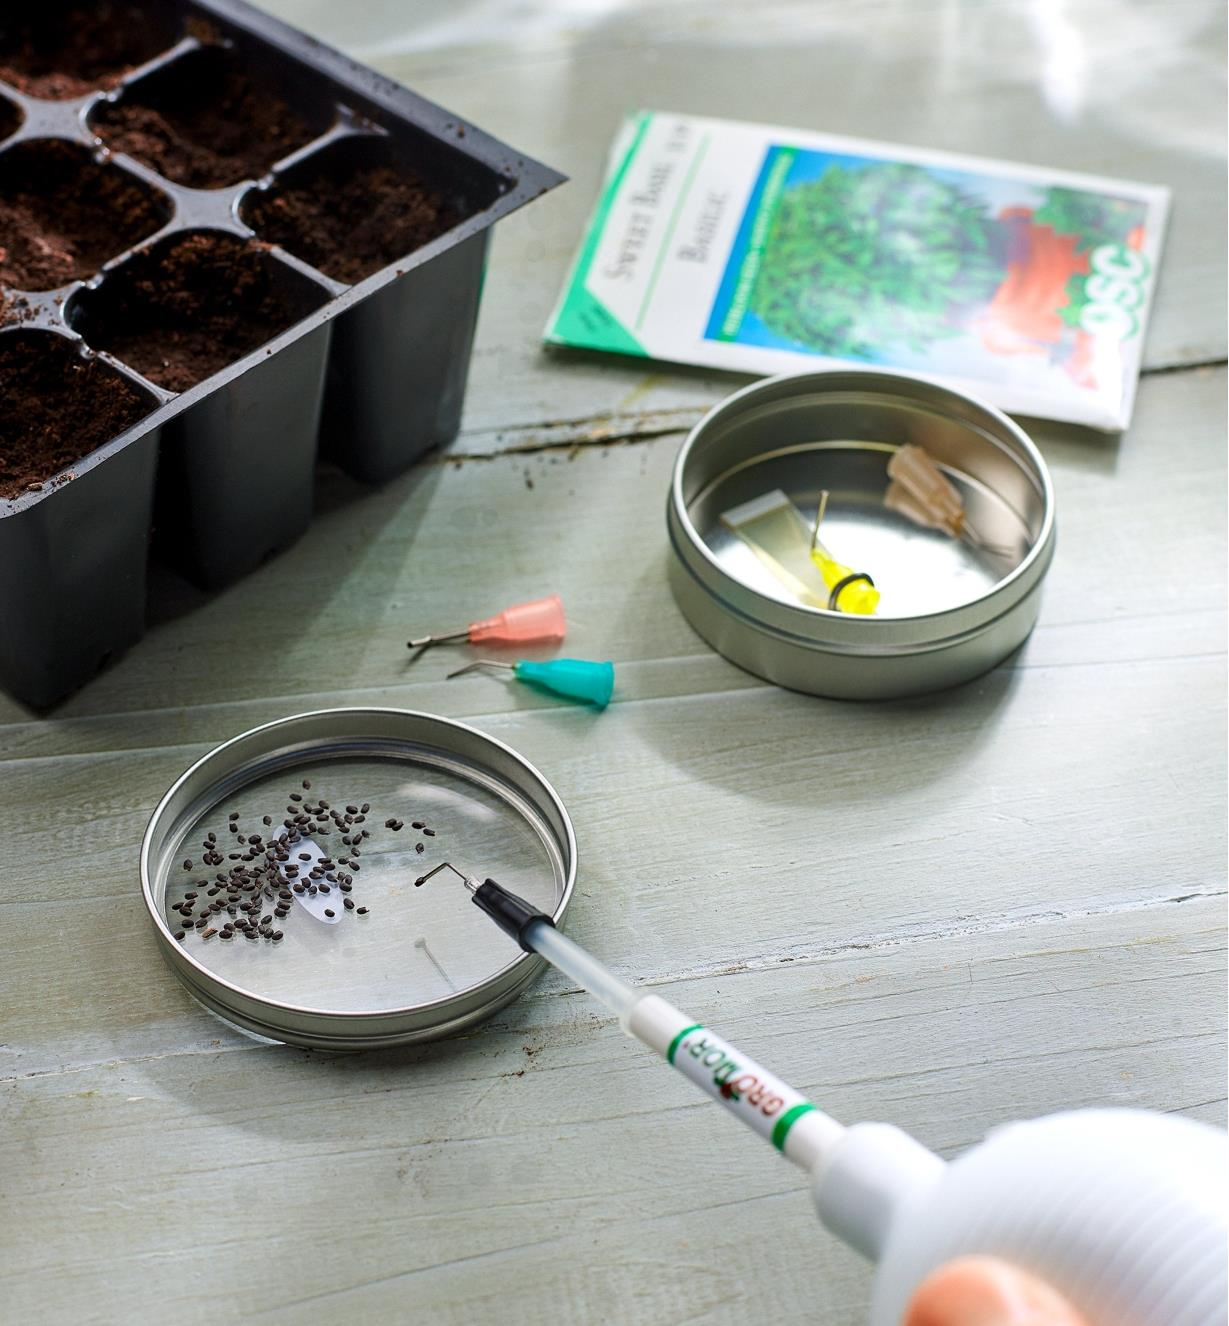 Planting small seeds with the mini wand seeder